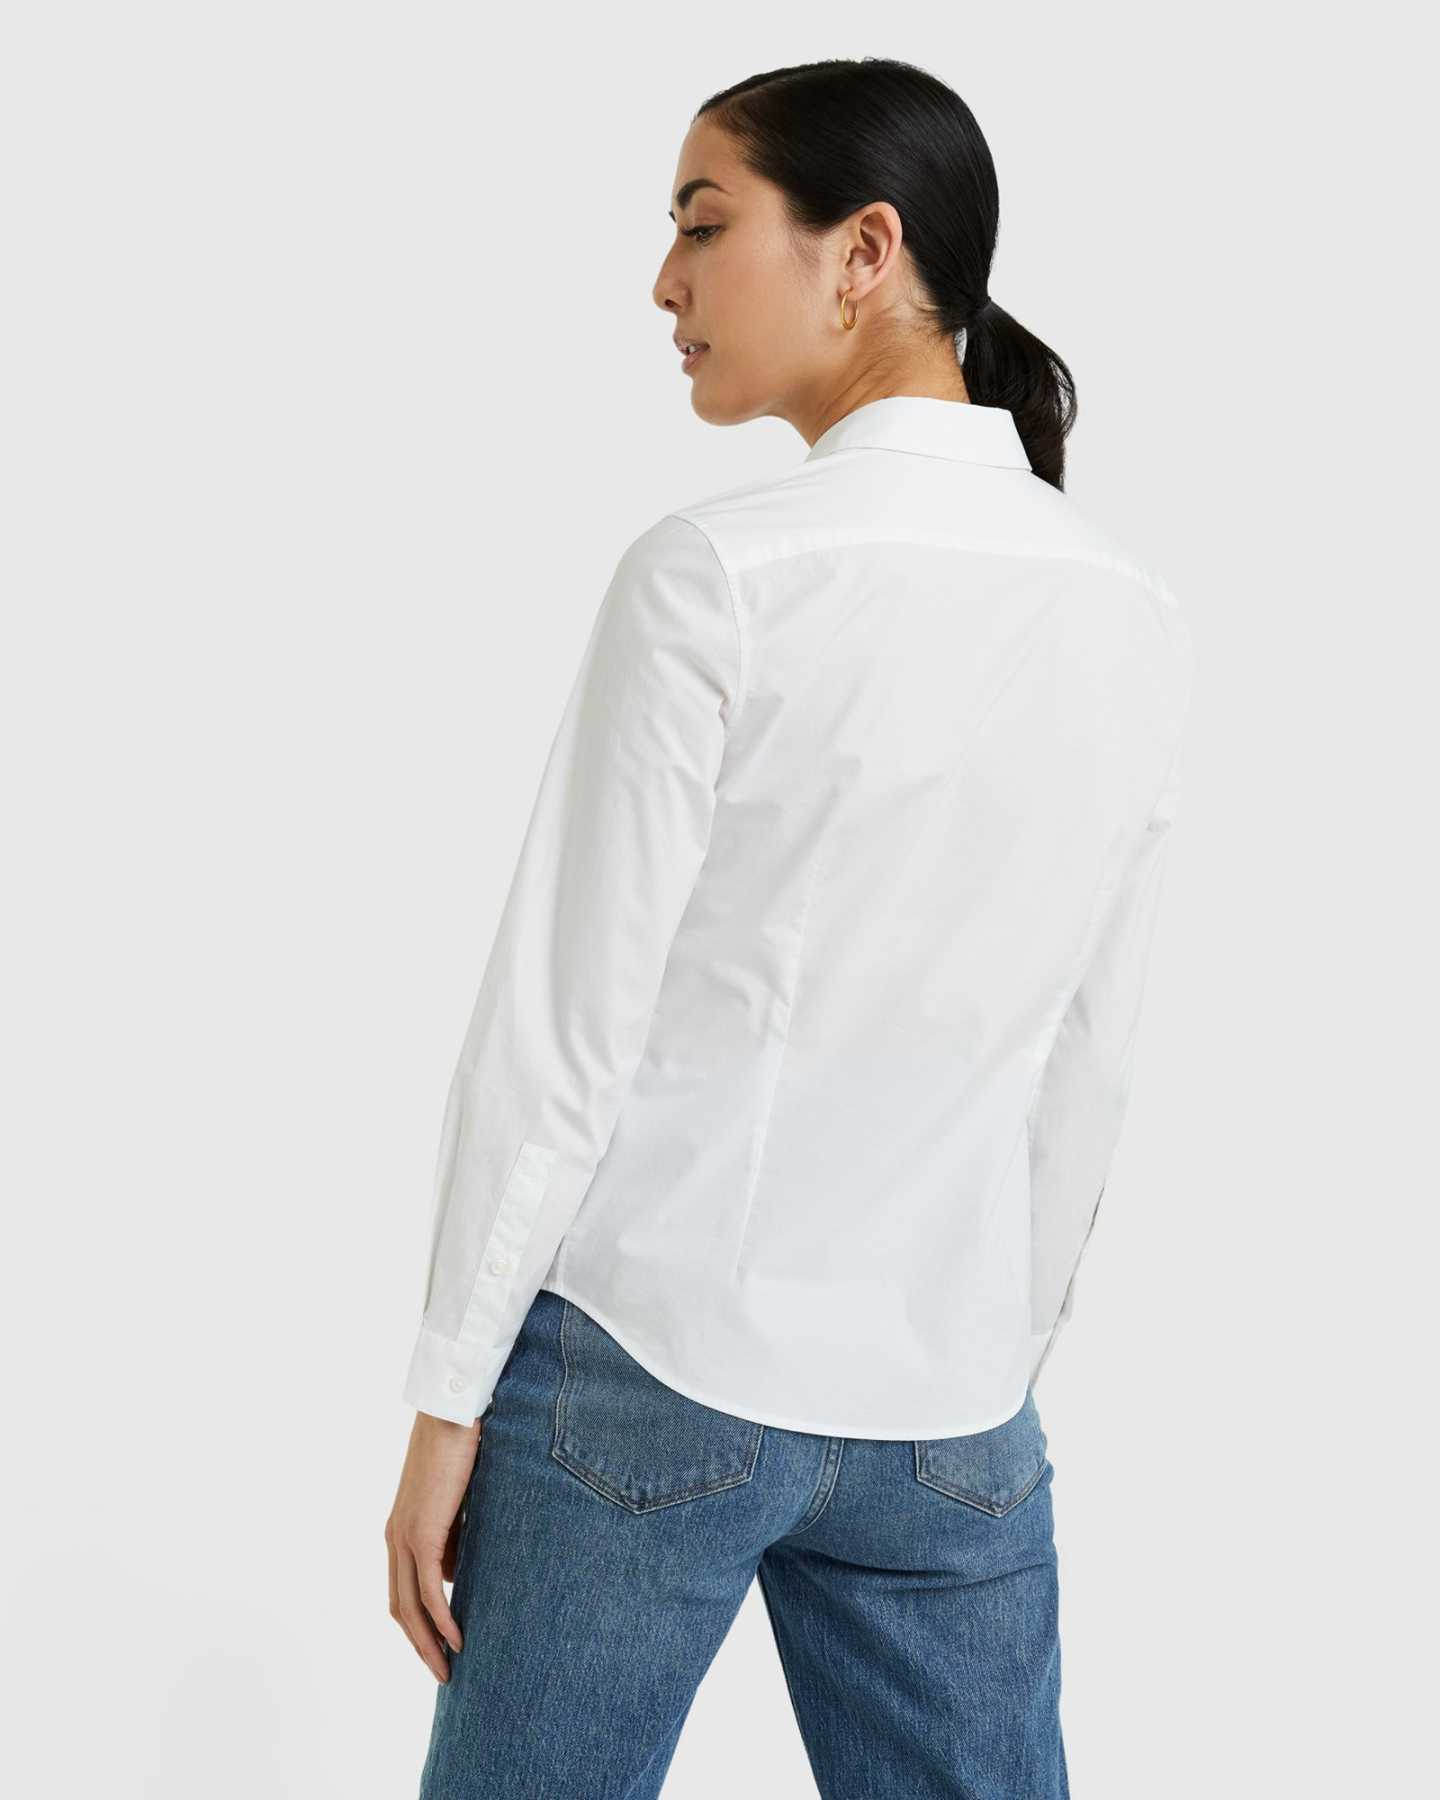 Organic Cotton Stretch Poplin Shirt - 13587171868783